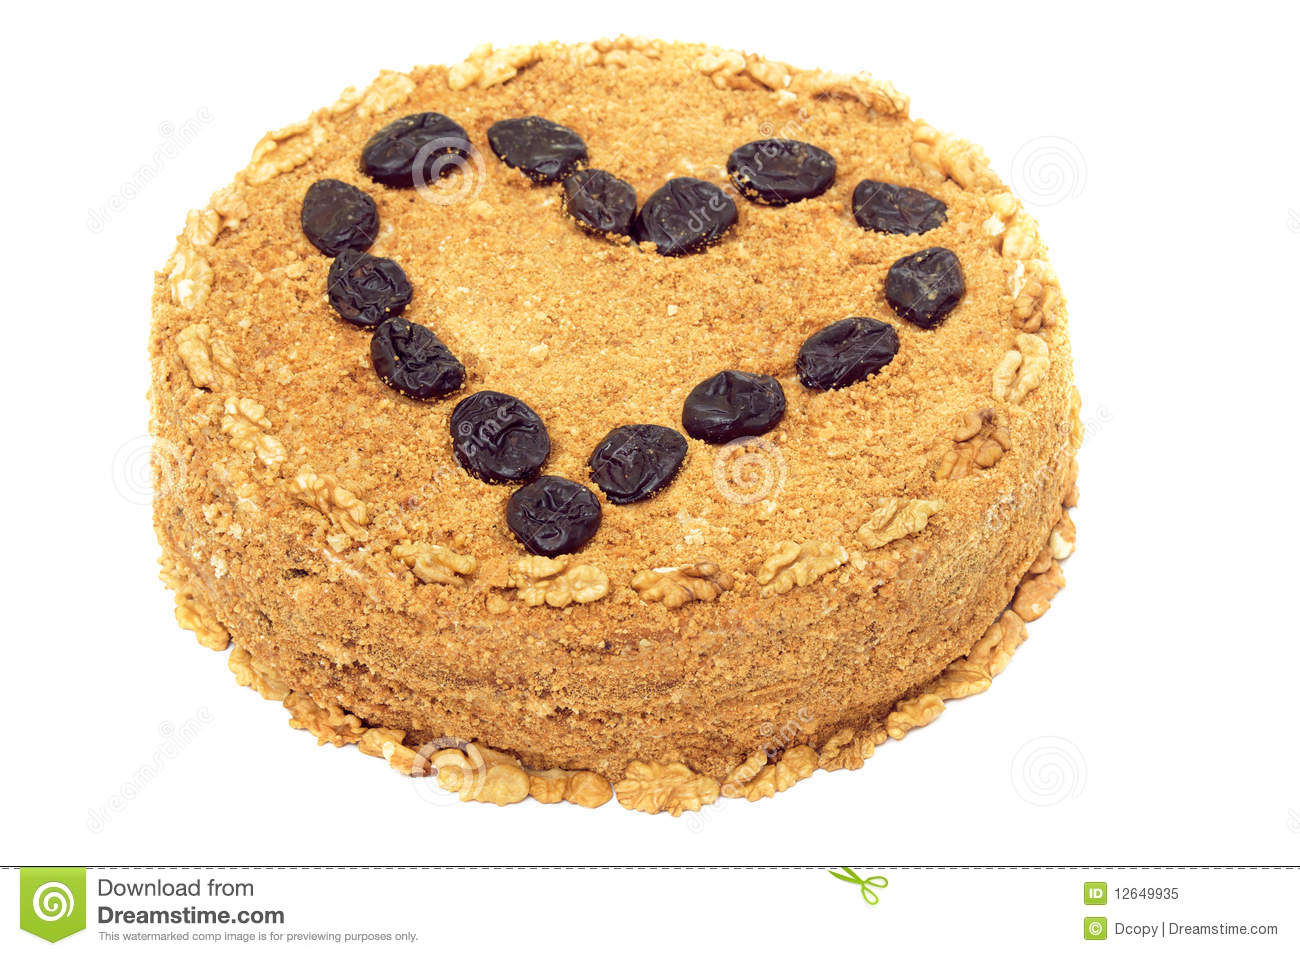 Clipart Of Honey Cake : Honey-walnut Cake With Prune Royalty Free Stock Photo ...